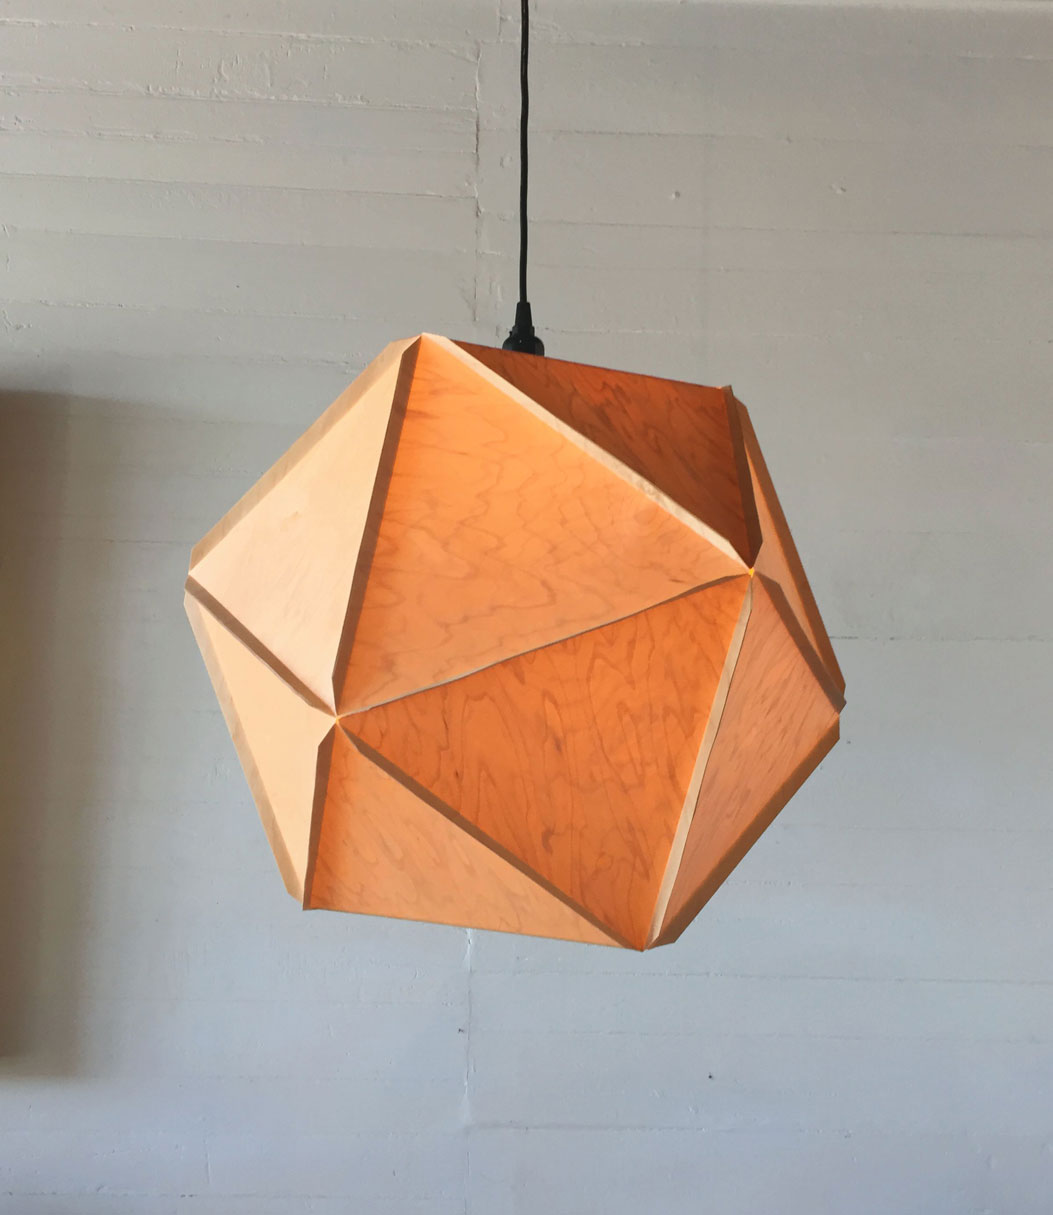 Woodhedron